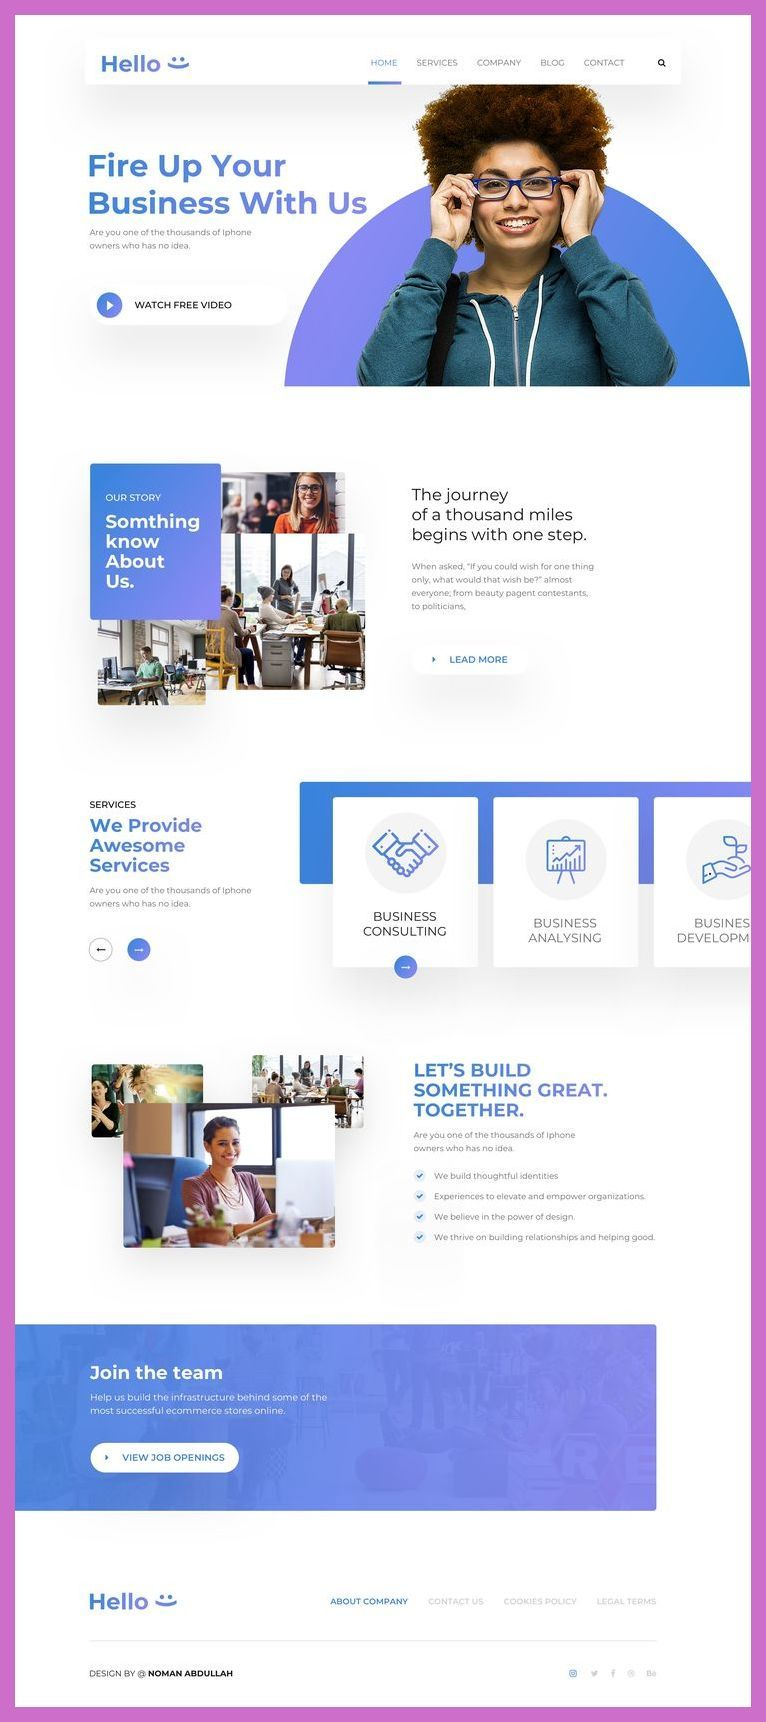 Best Responsive Websites 2018 Hello Home Page Landingpage Responsive Website Templ In 2020 Wordpress Website Design Website Design Layout Web Development Design